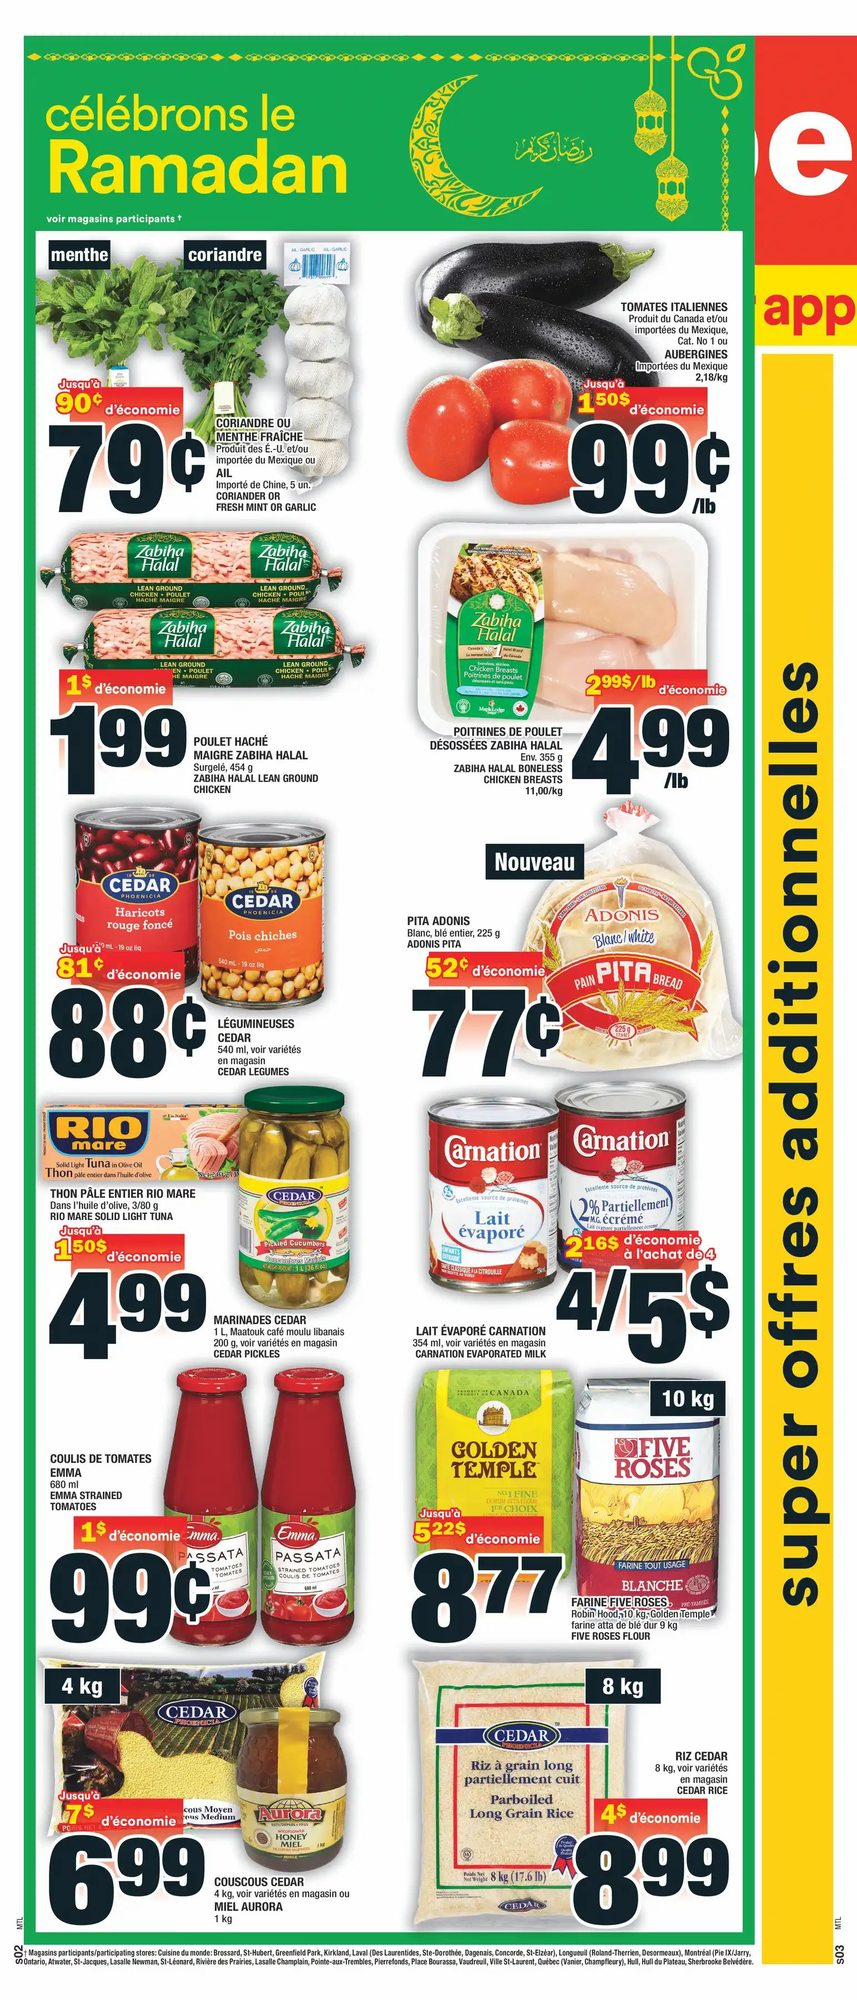 Super C - Weekly Flyer Specials - Page 3